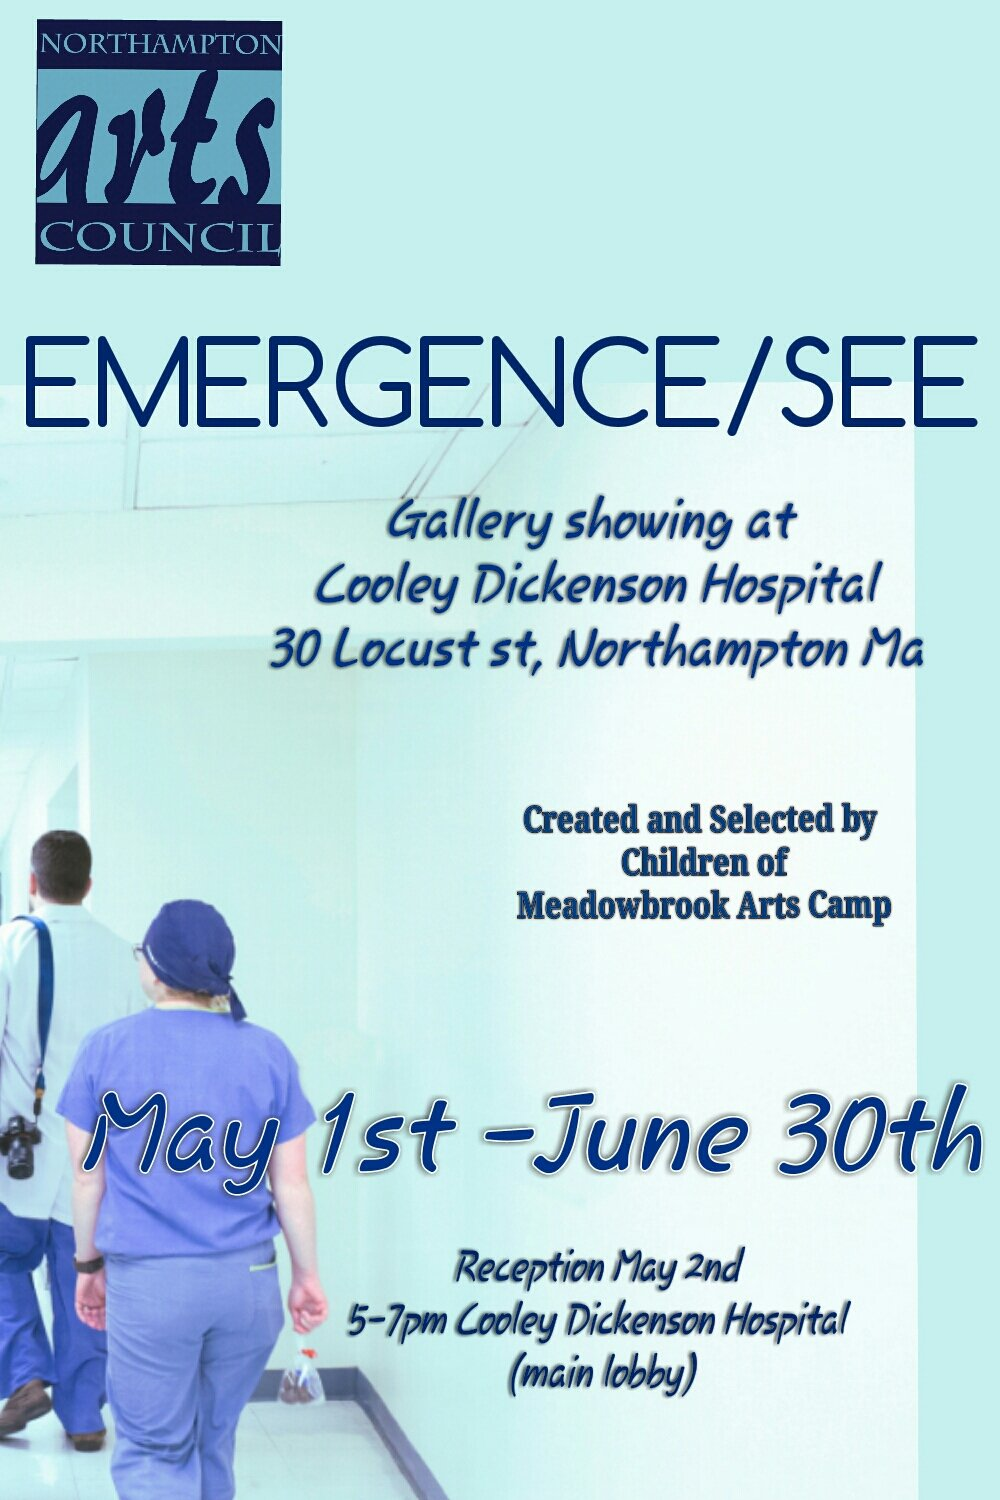 EMERGENCE/SEE Opening Reception